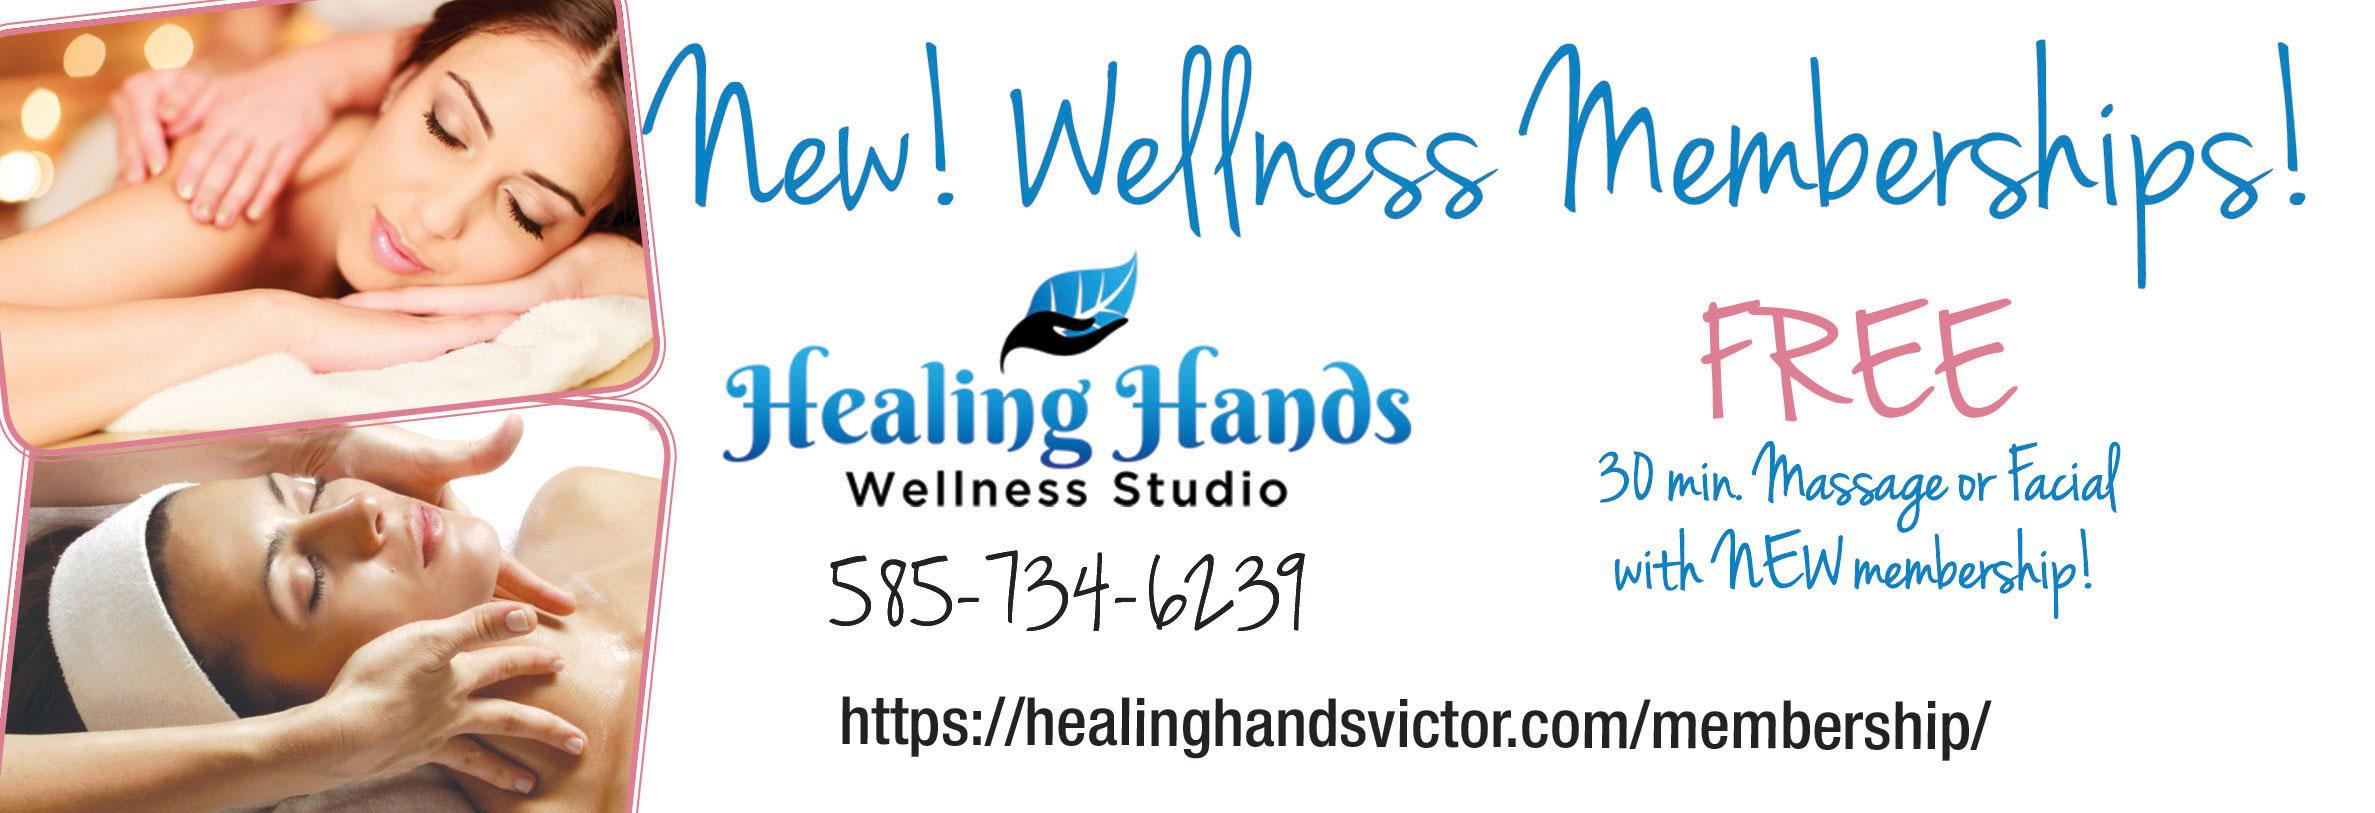 healing hands rochester ny coupons